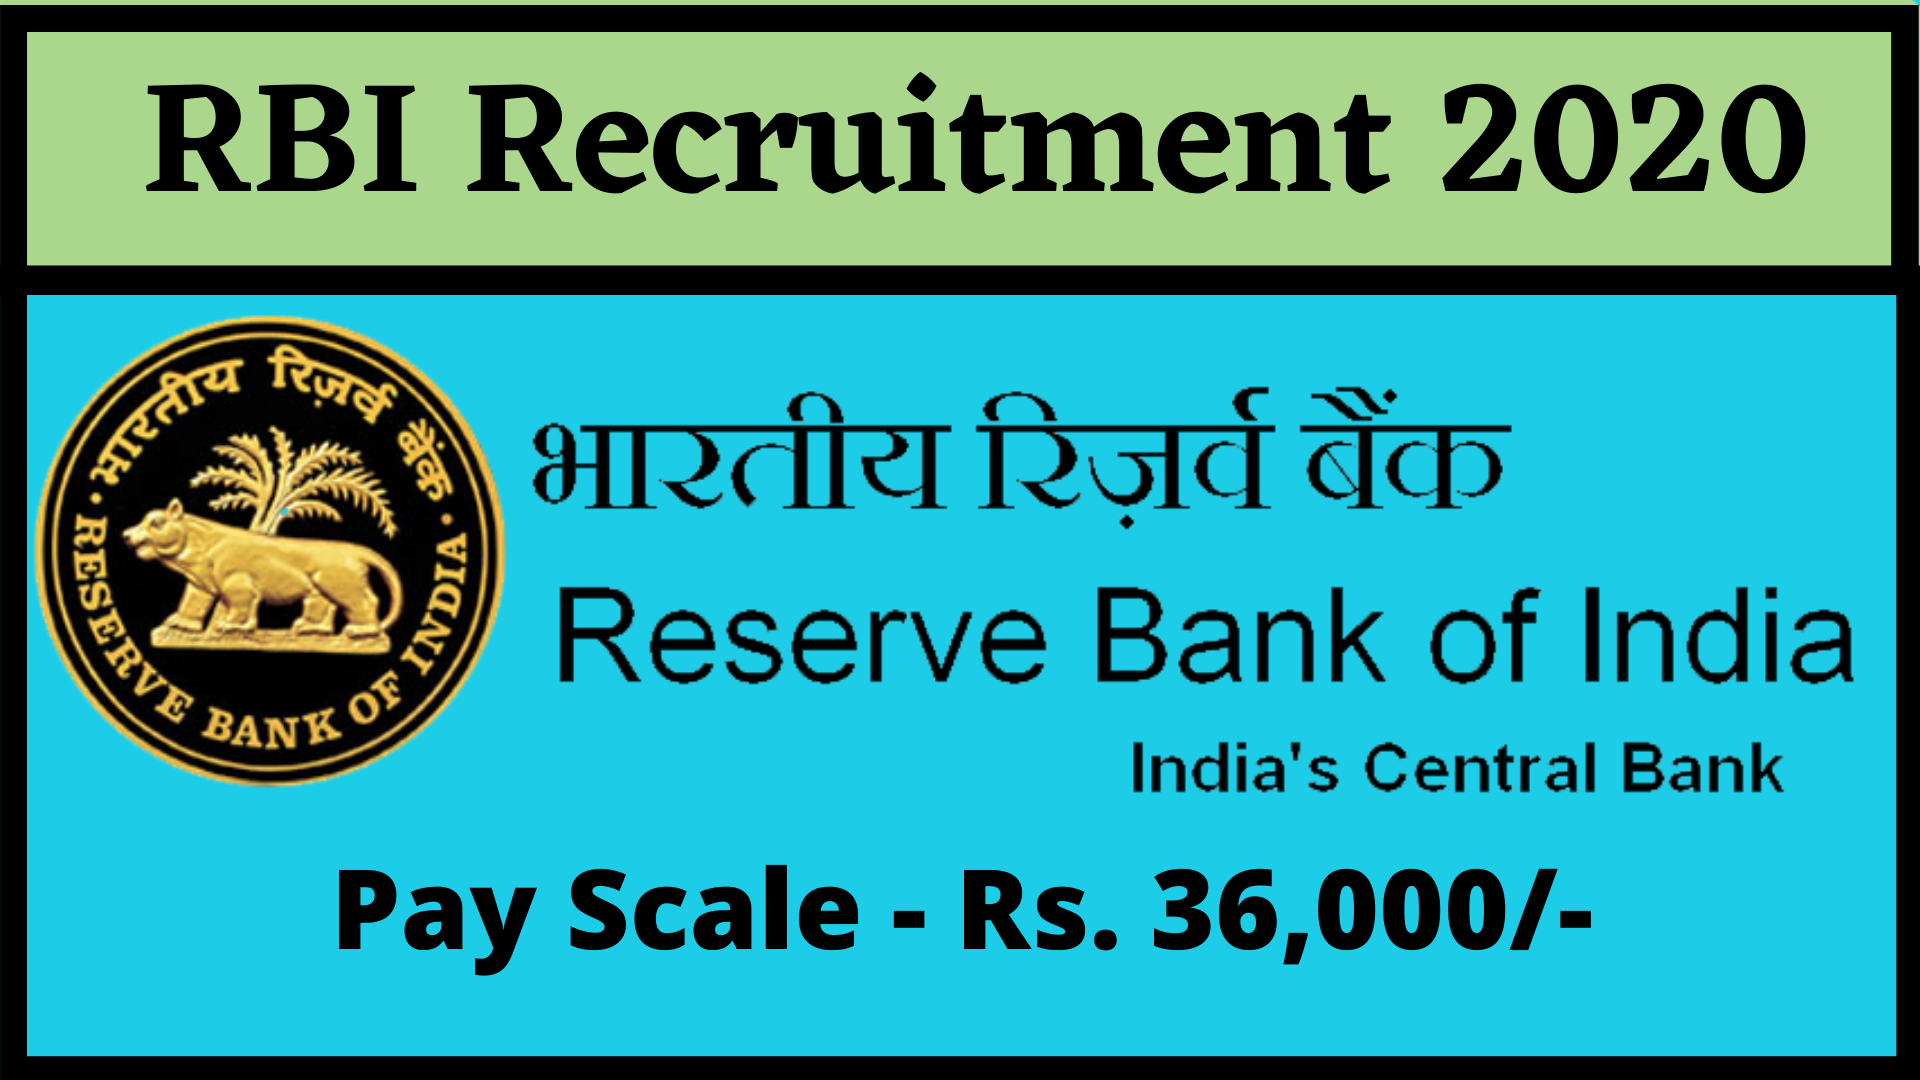 """RBI Recruitment 2019-2020 was released. The Reserve Bank of India invites applications from eligible candidates for 926 posts of """"Assistant"""" ..."""